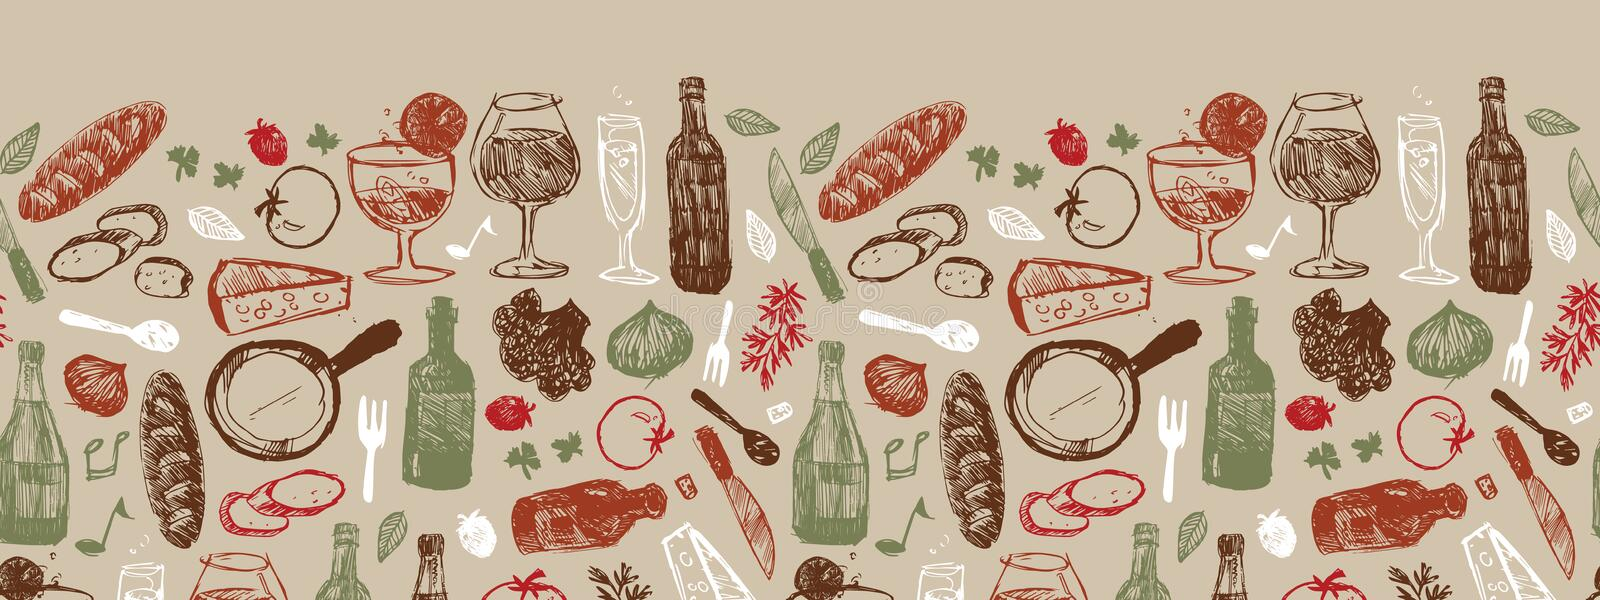 Vector light brown bar italia sketch illustration horizontal border pattern with bottles, wine glasses, bread, tomatoes vector illustration